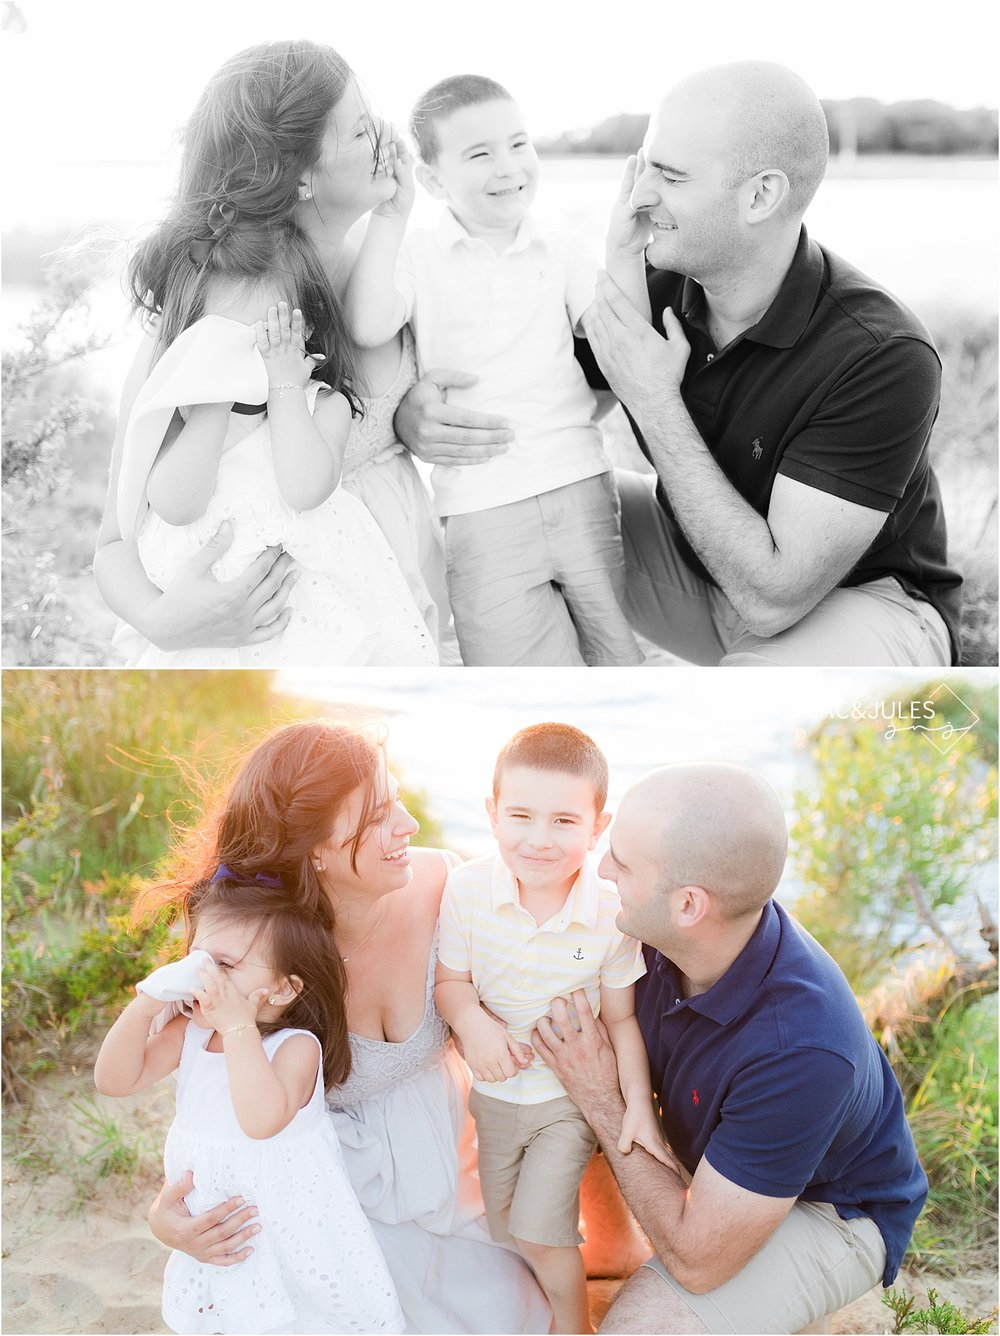 candid family photo using sigma 35mm art 1.4 at sandy hook nj